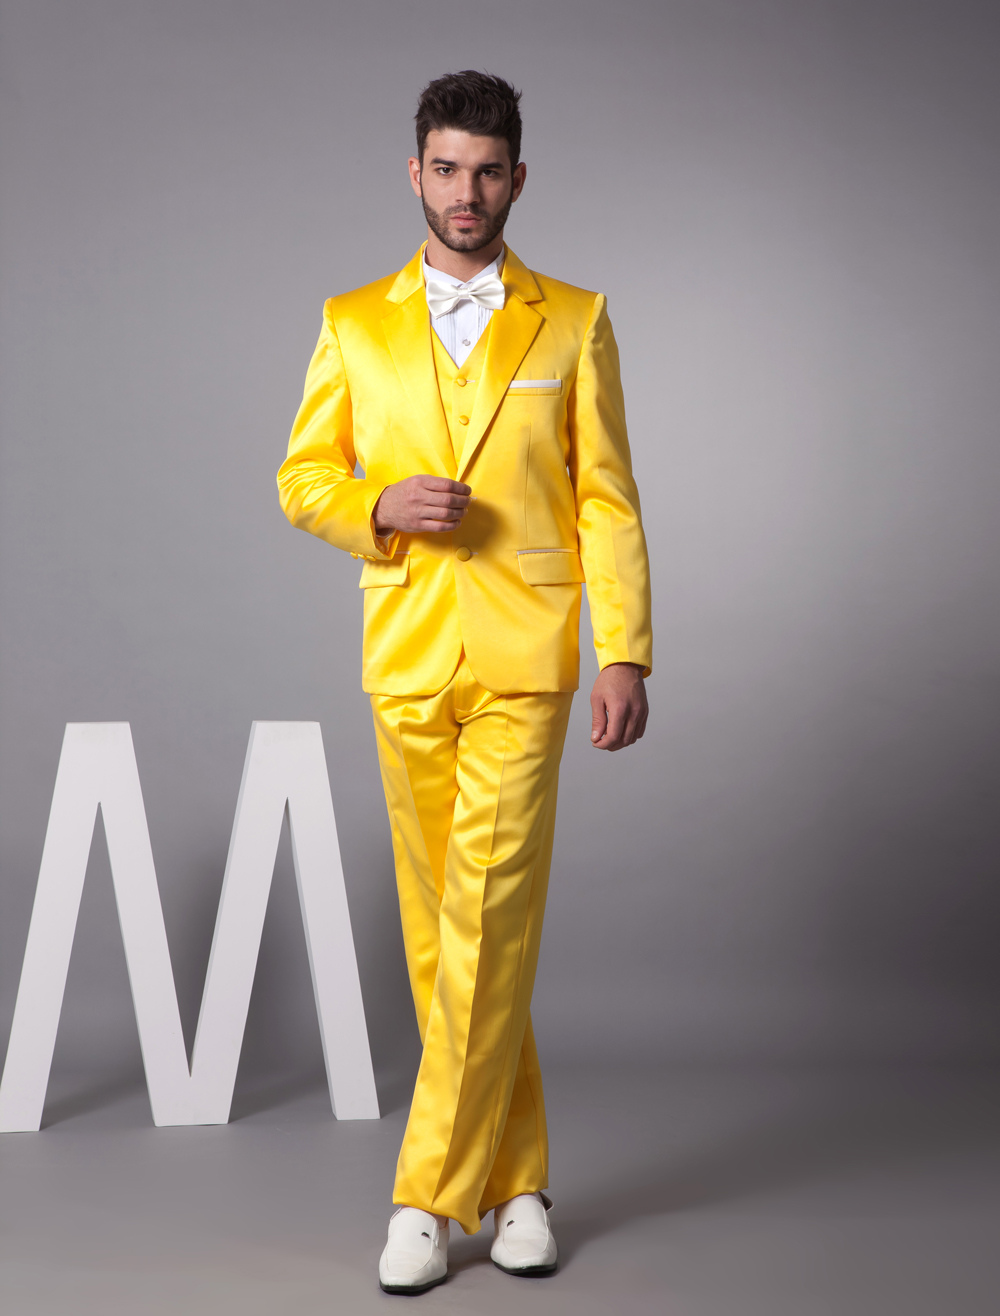 Wedding Wedding Tuxedo yellow single breasted button lapel worsted groom wedding tuxedo milanoo com